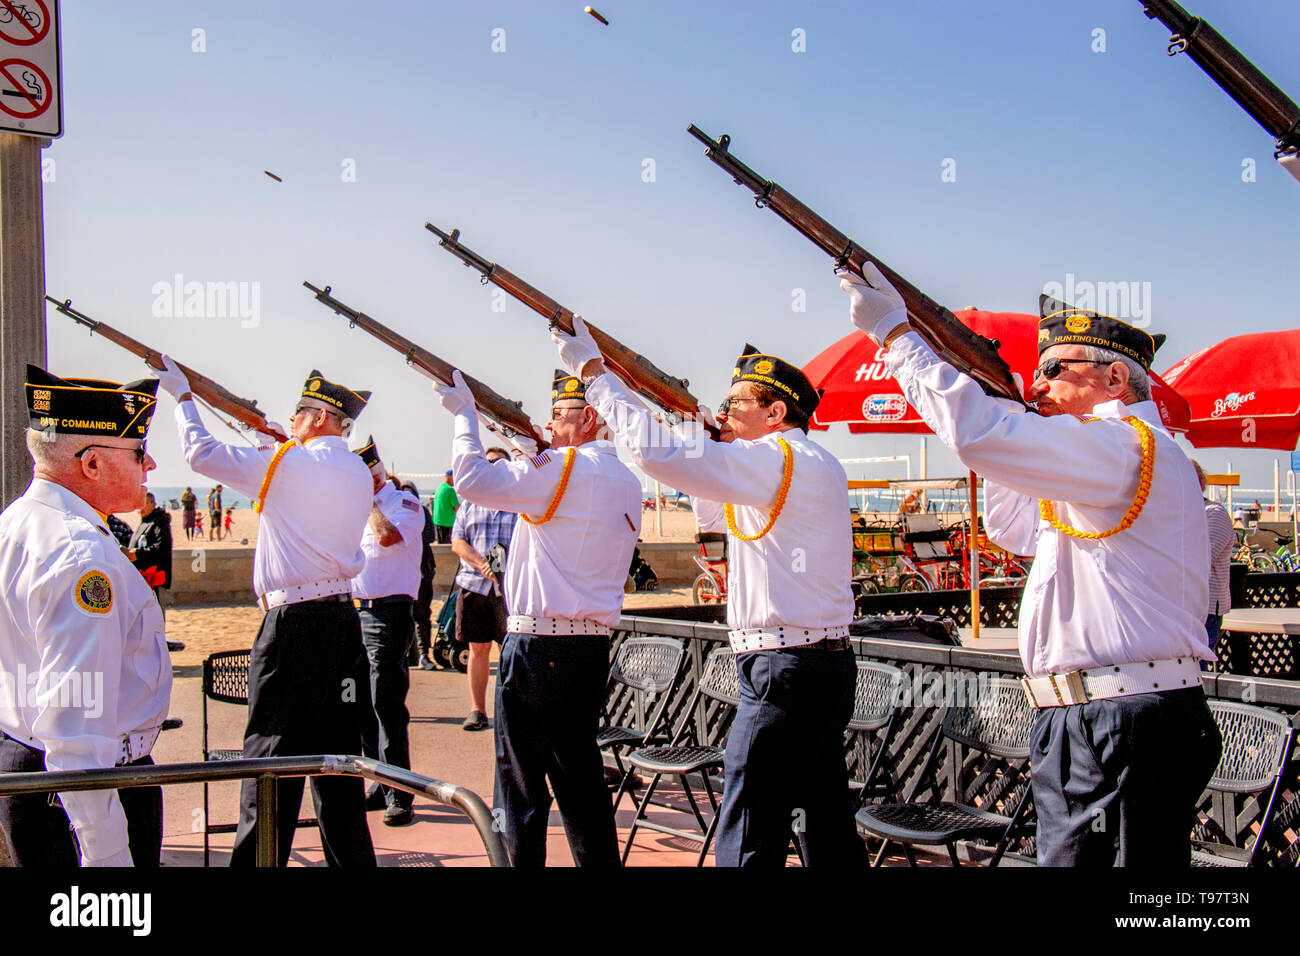 Cartridge cases fly as an American Legion Honor Guard fires a three volley rifle salute at Veterans Day ceremonies in Huntington Beach, CA. - Stock Image